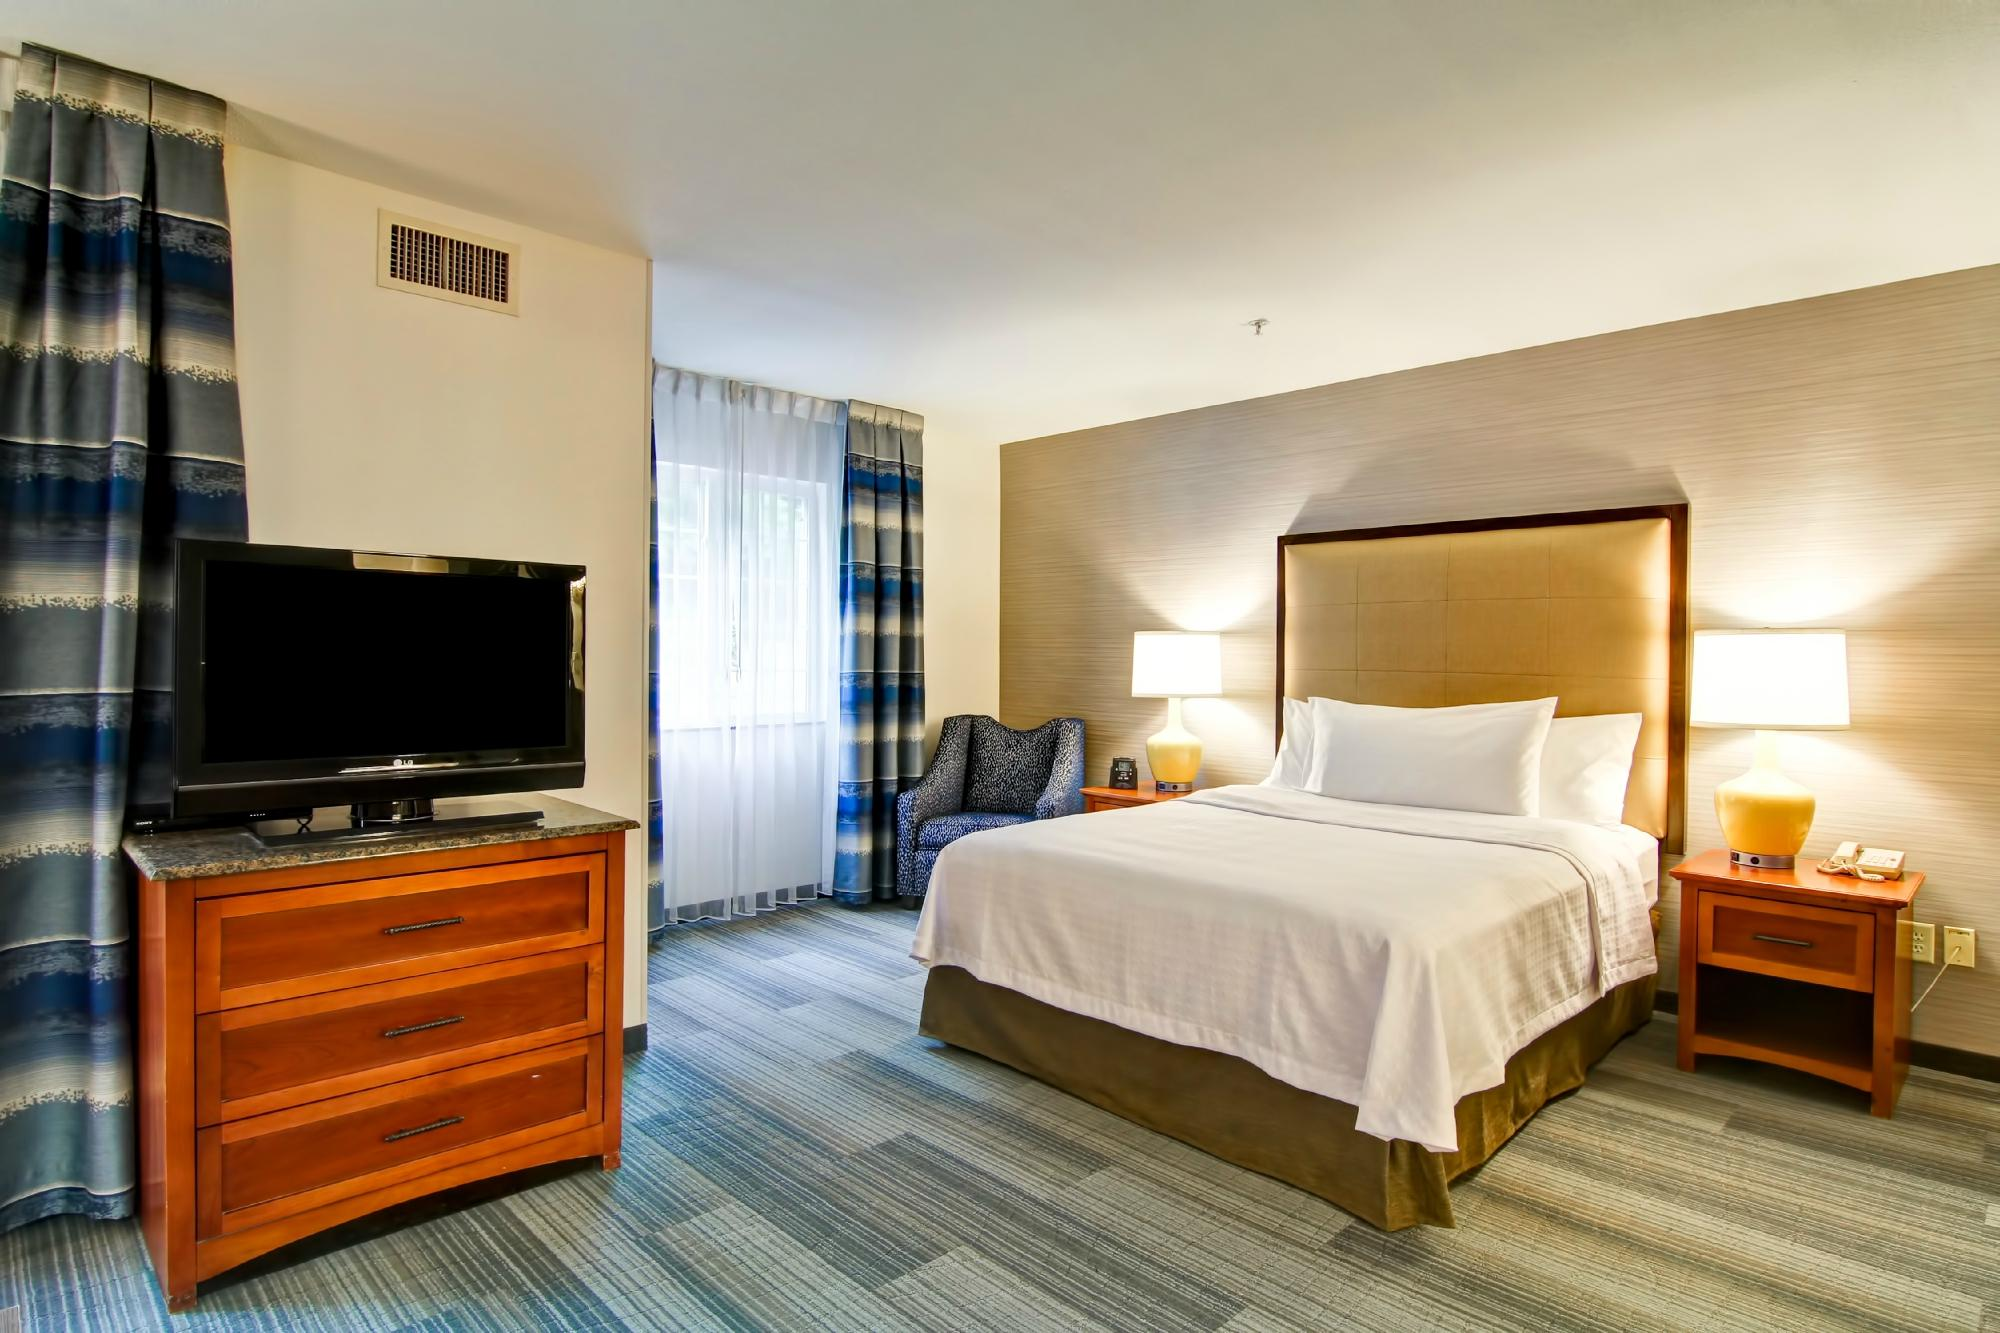 Homewood Suites by Hilton Stratford